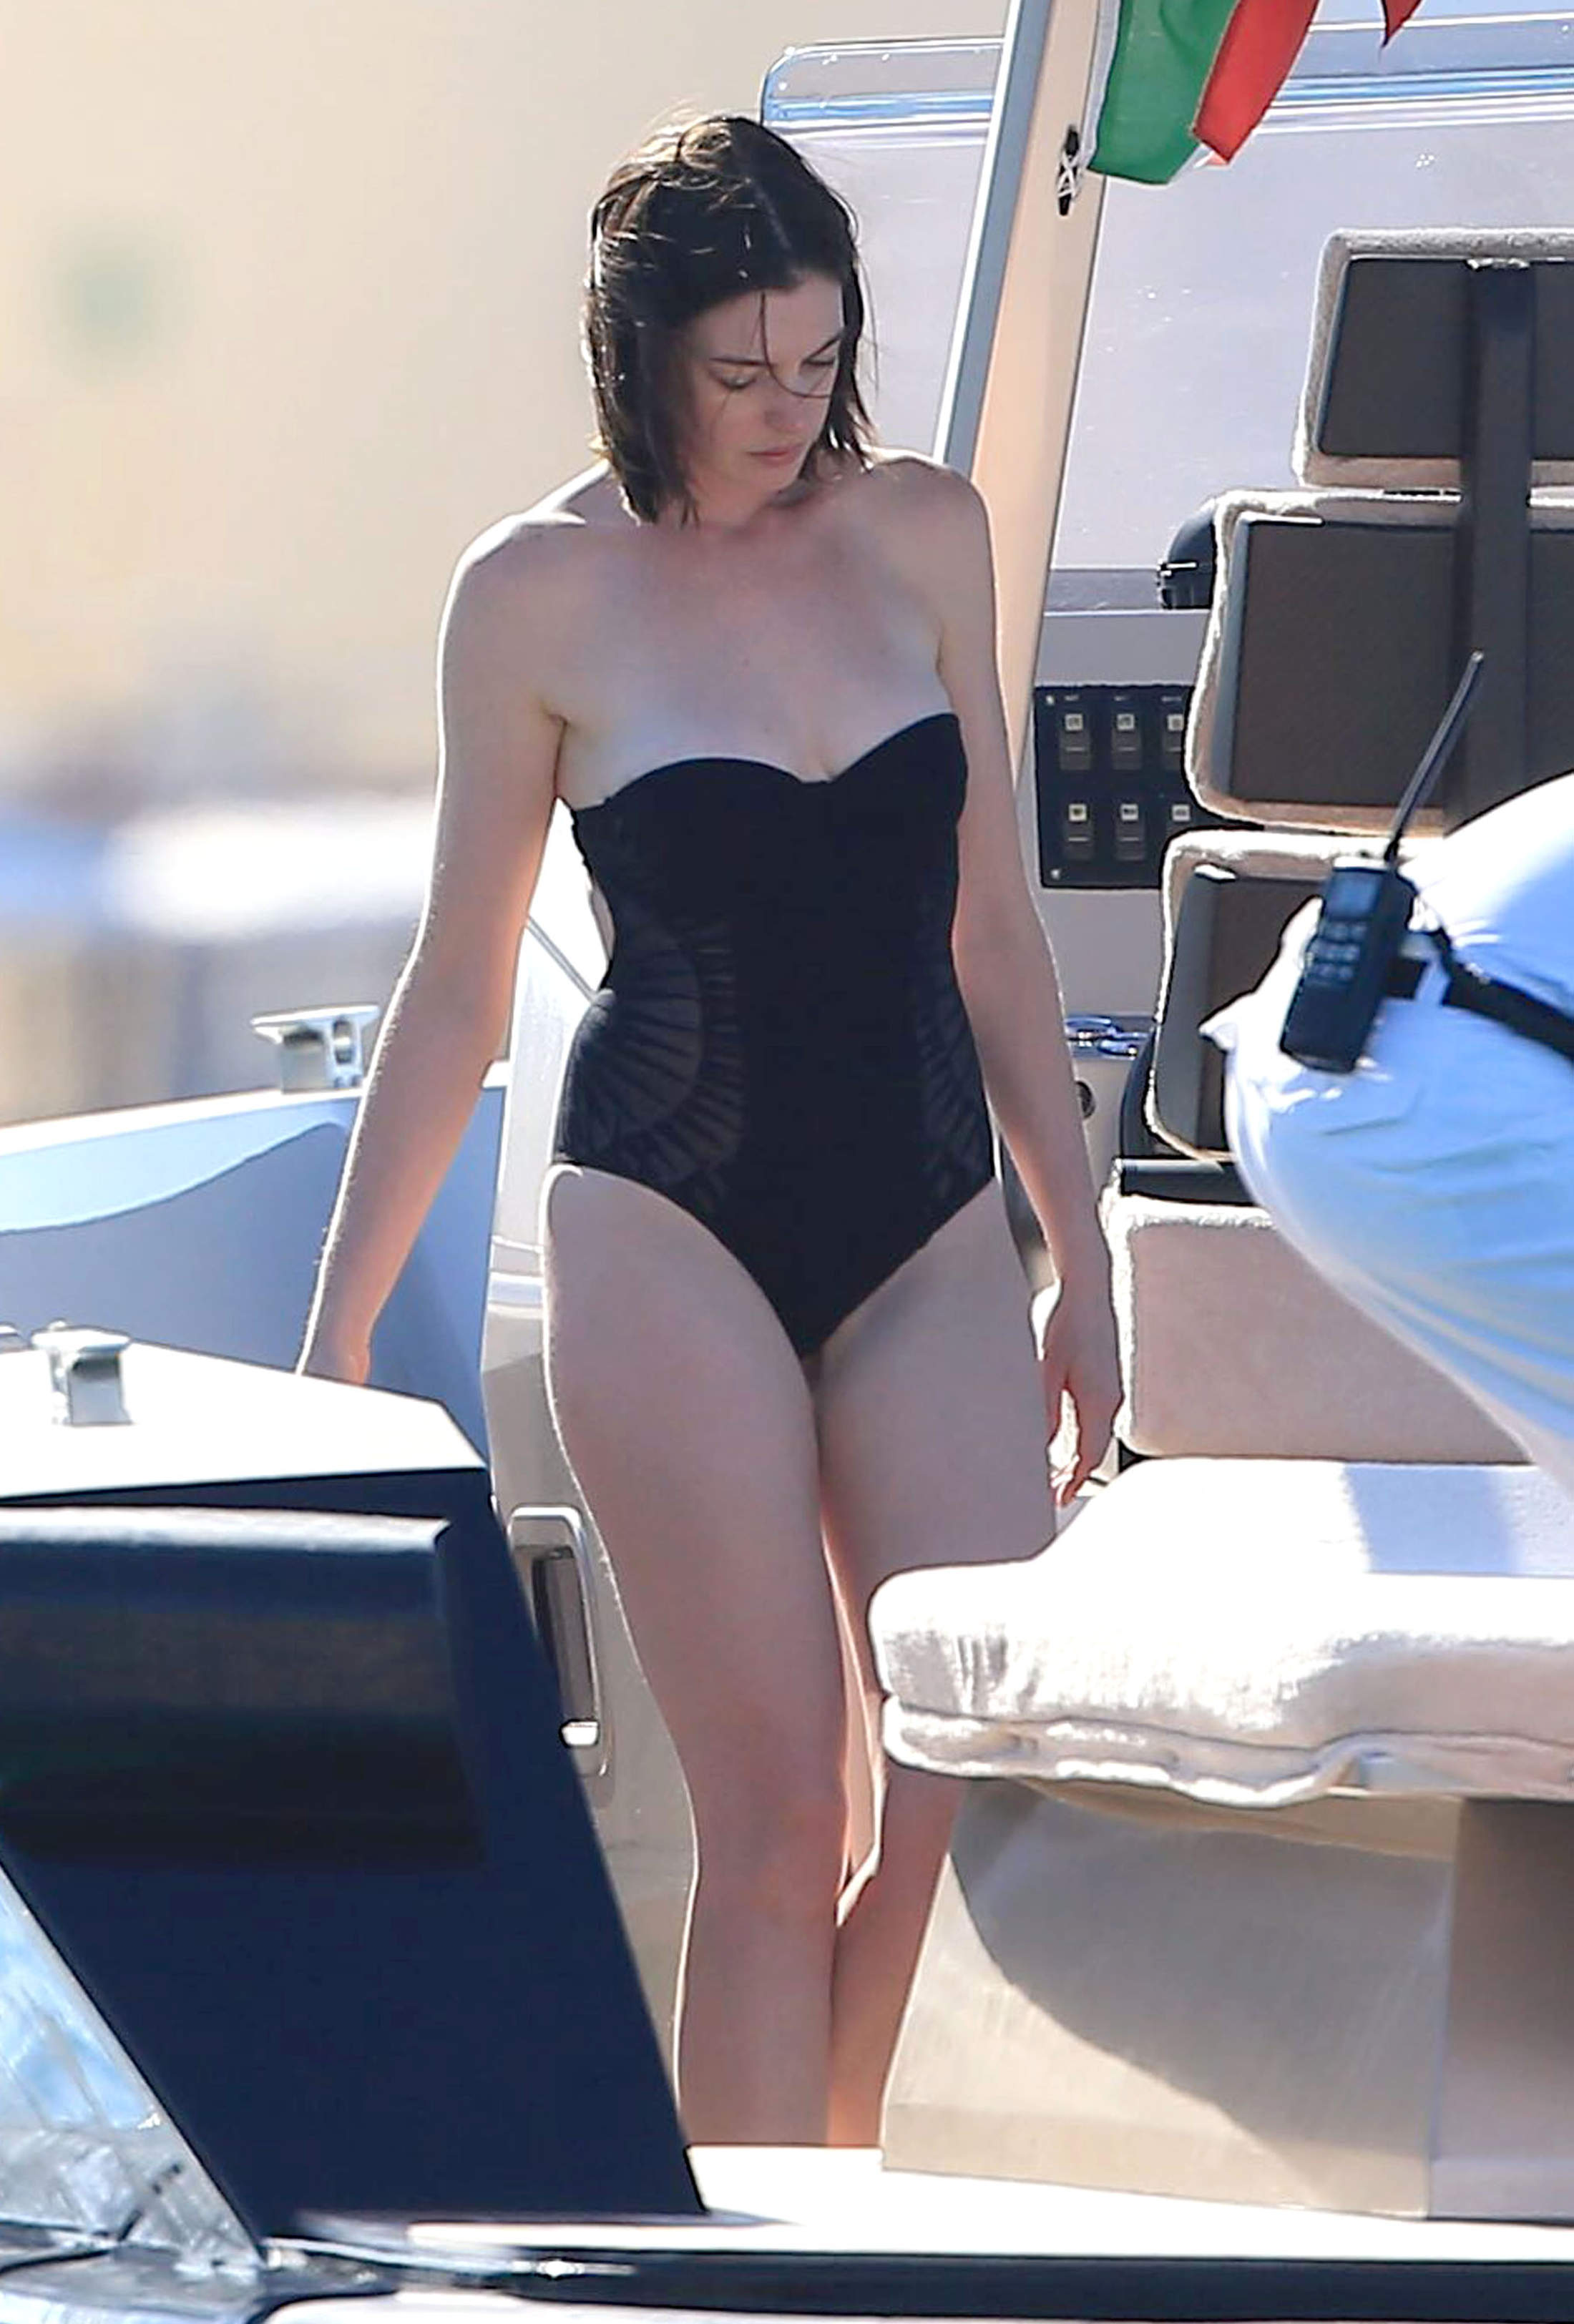 Anne hathaway shows off her boobs want some